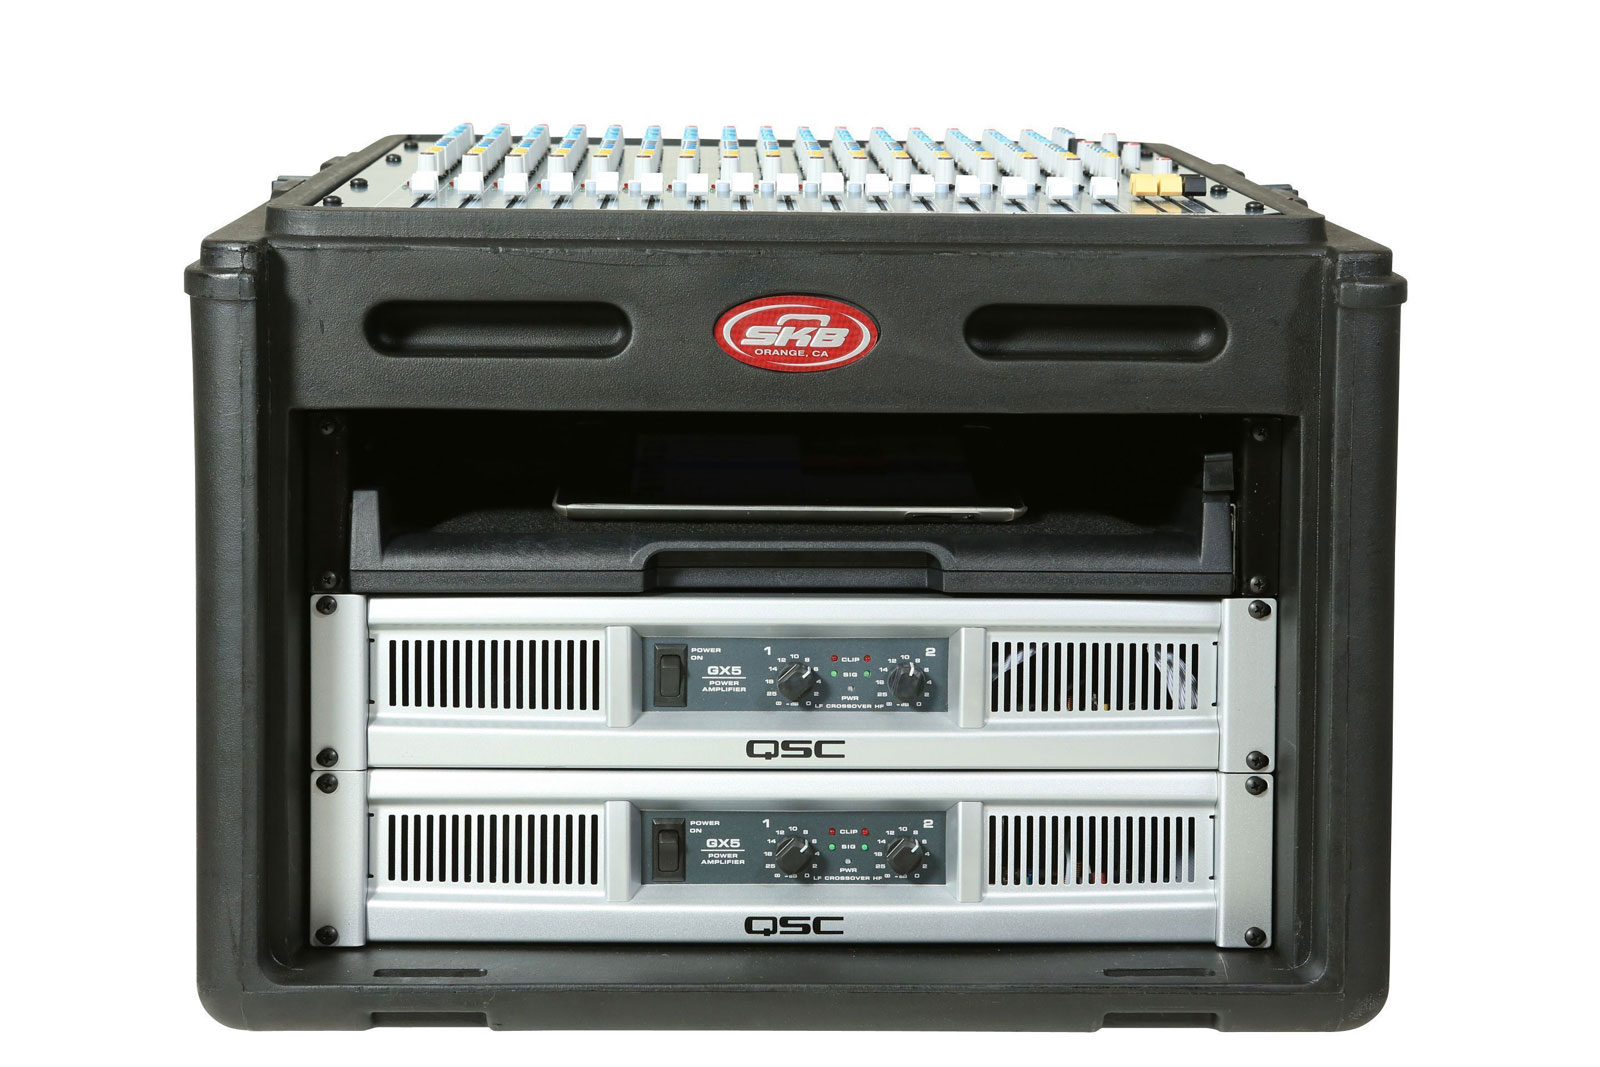 1SKB-R106 - ROTO RACK 10X6 RACK CONSOLE, STEEL RAILS, HARD TOP, LEFT / RIGHT ACCESS DOORS